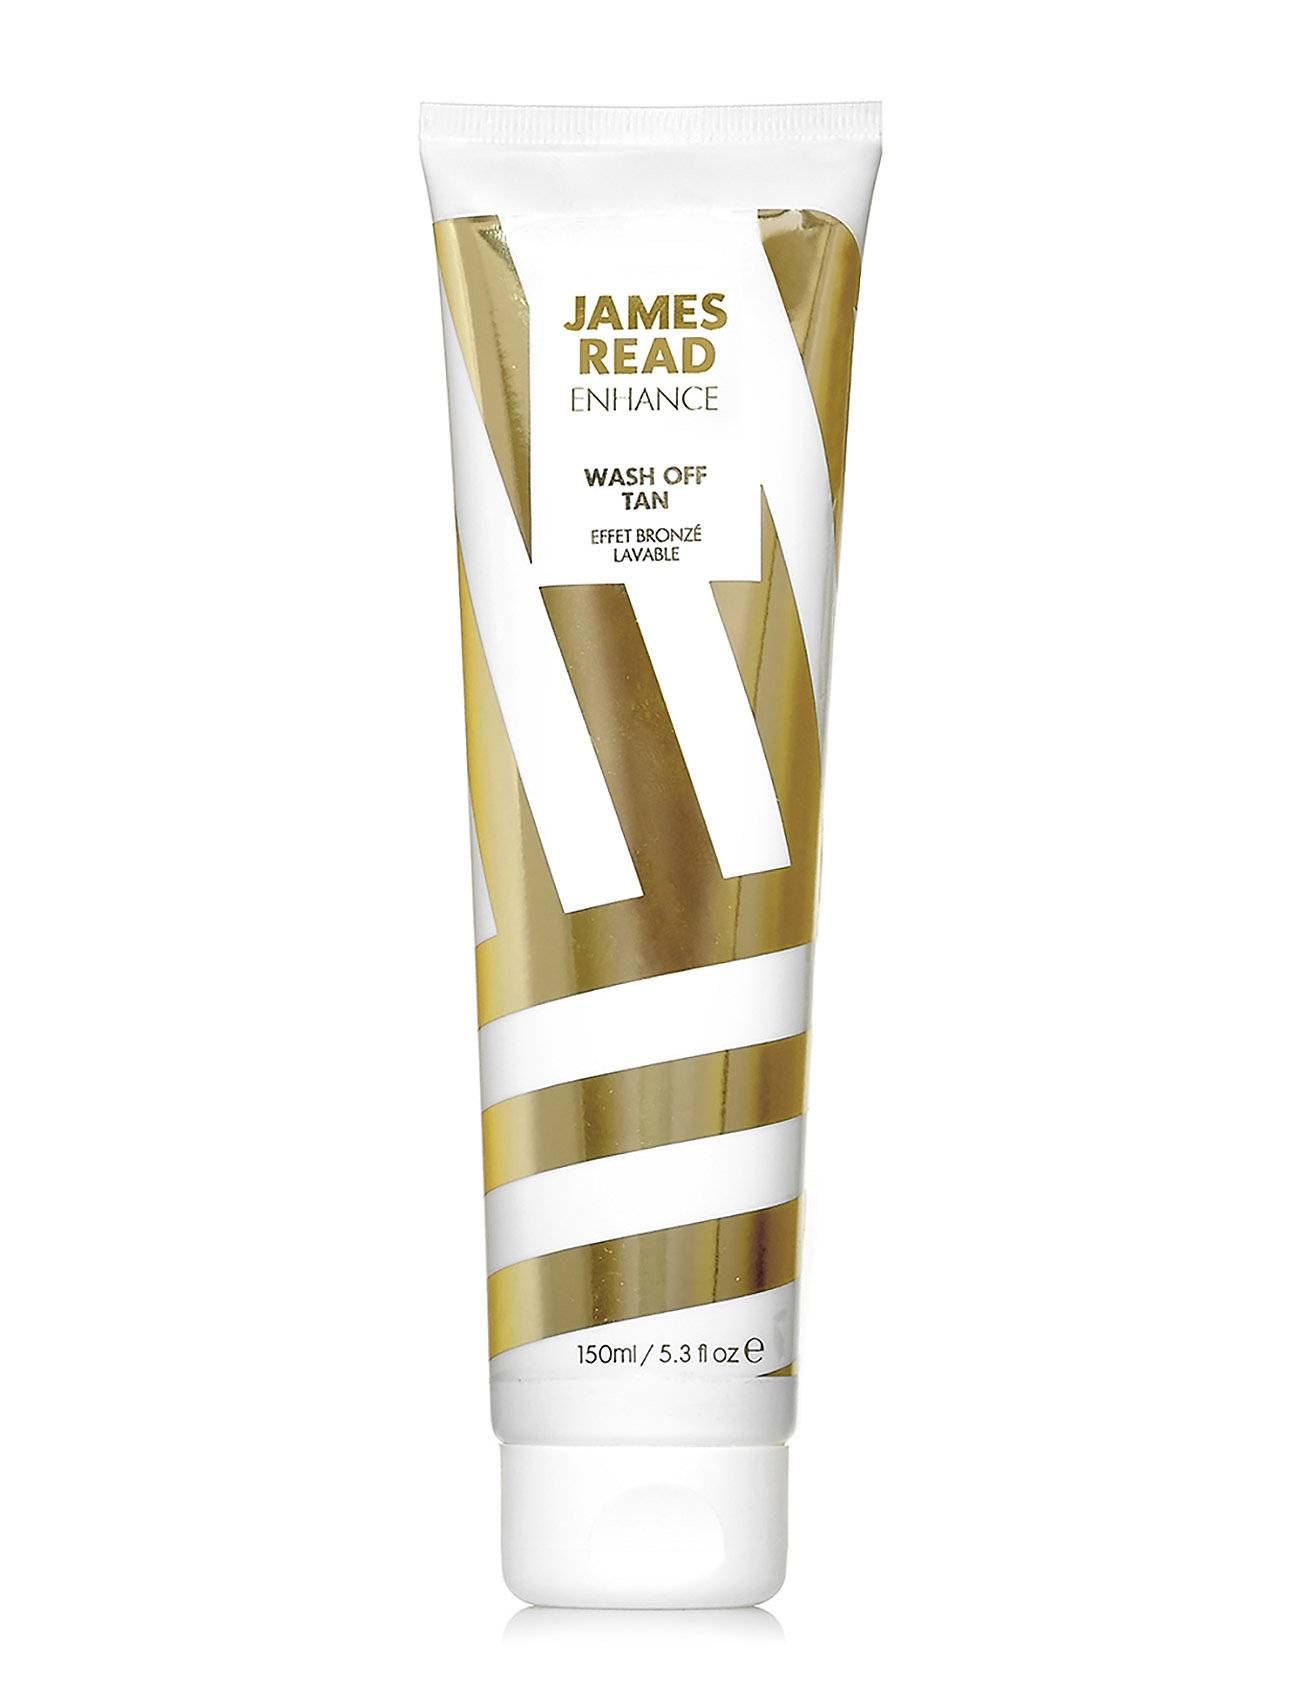 James Read Wash Off Tan Body Beauty WOMEN Skin Care Sun Products Self Tanners Nude James Read